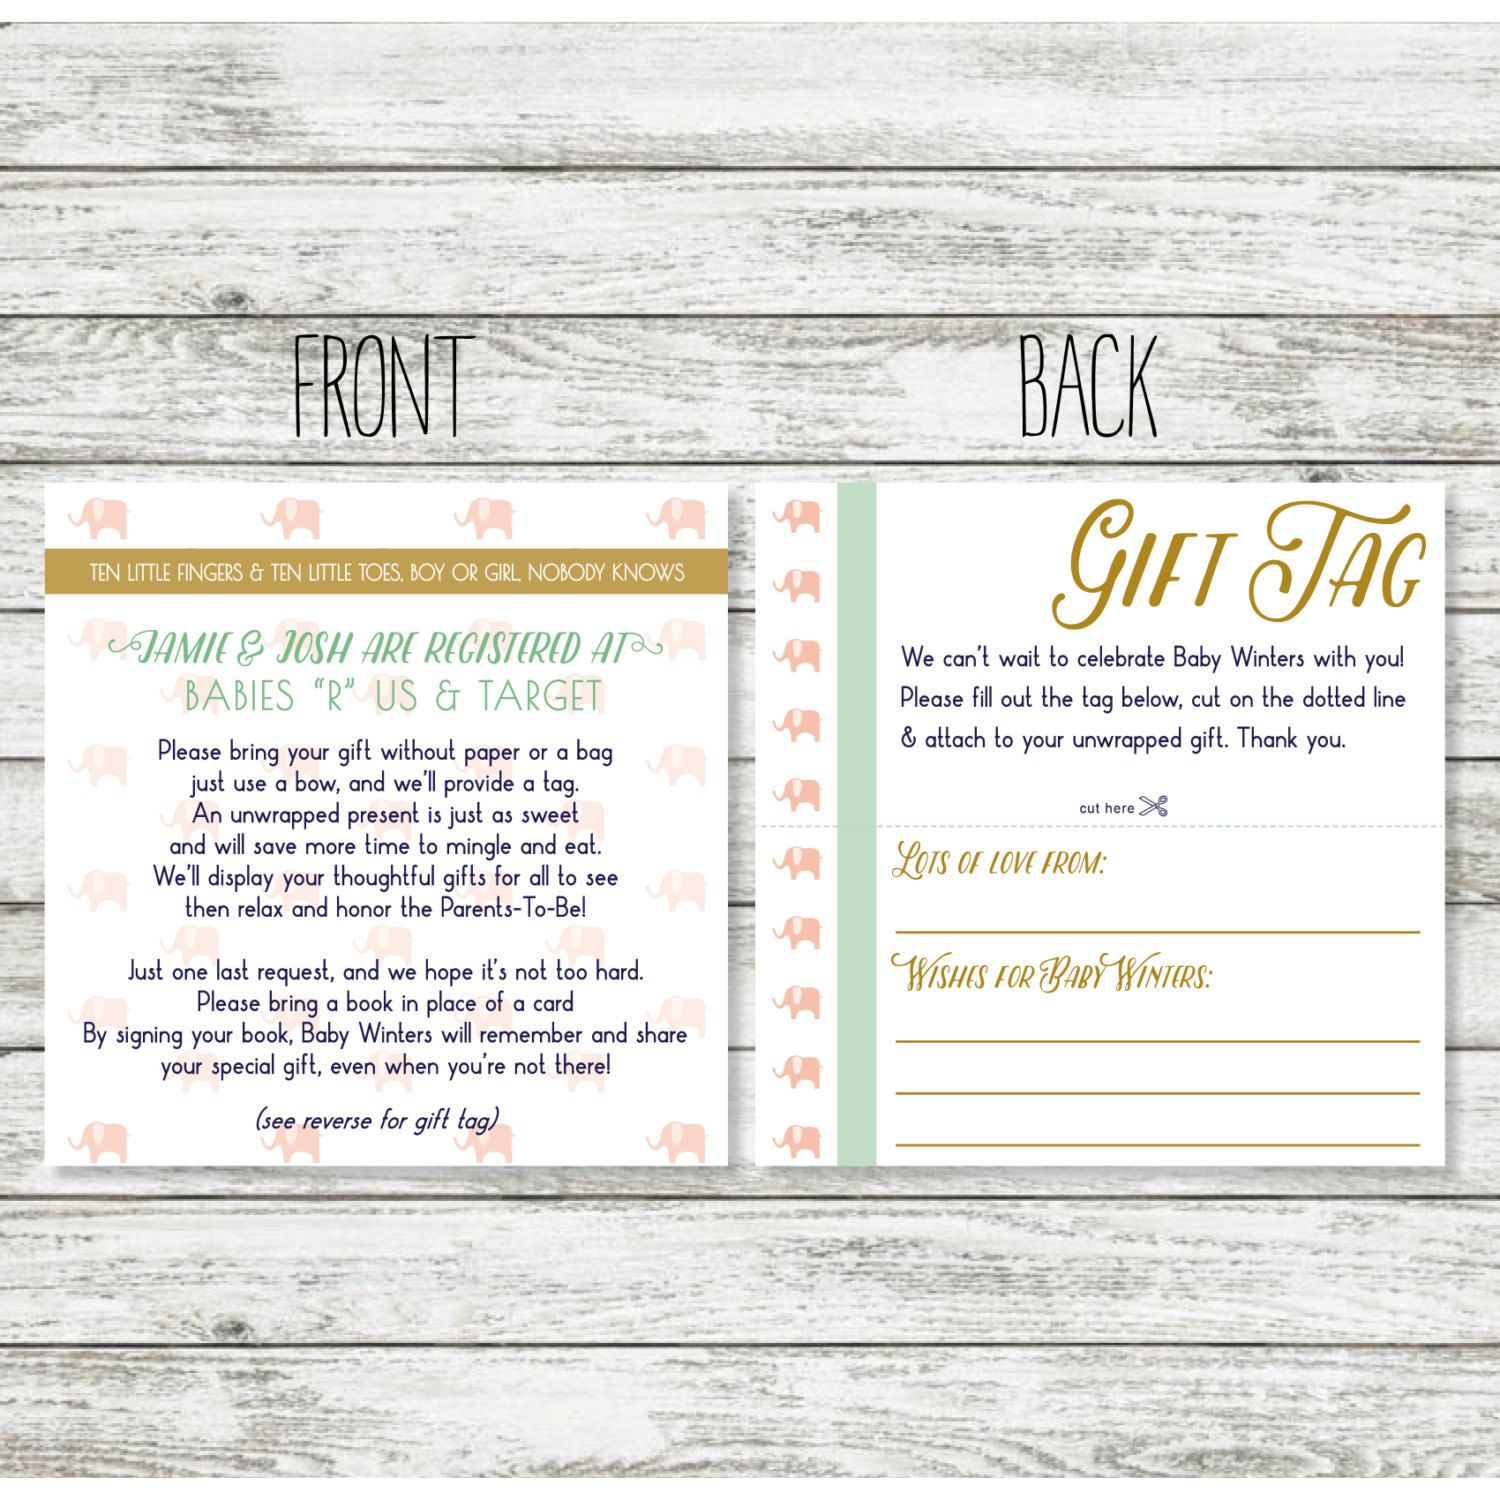 Wedding Invitation Gift Registry Wording: Wording For Unwrapped Gift For